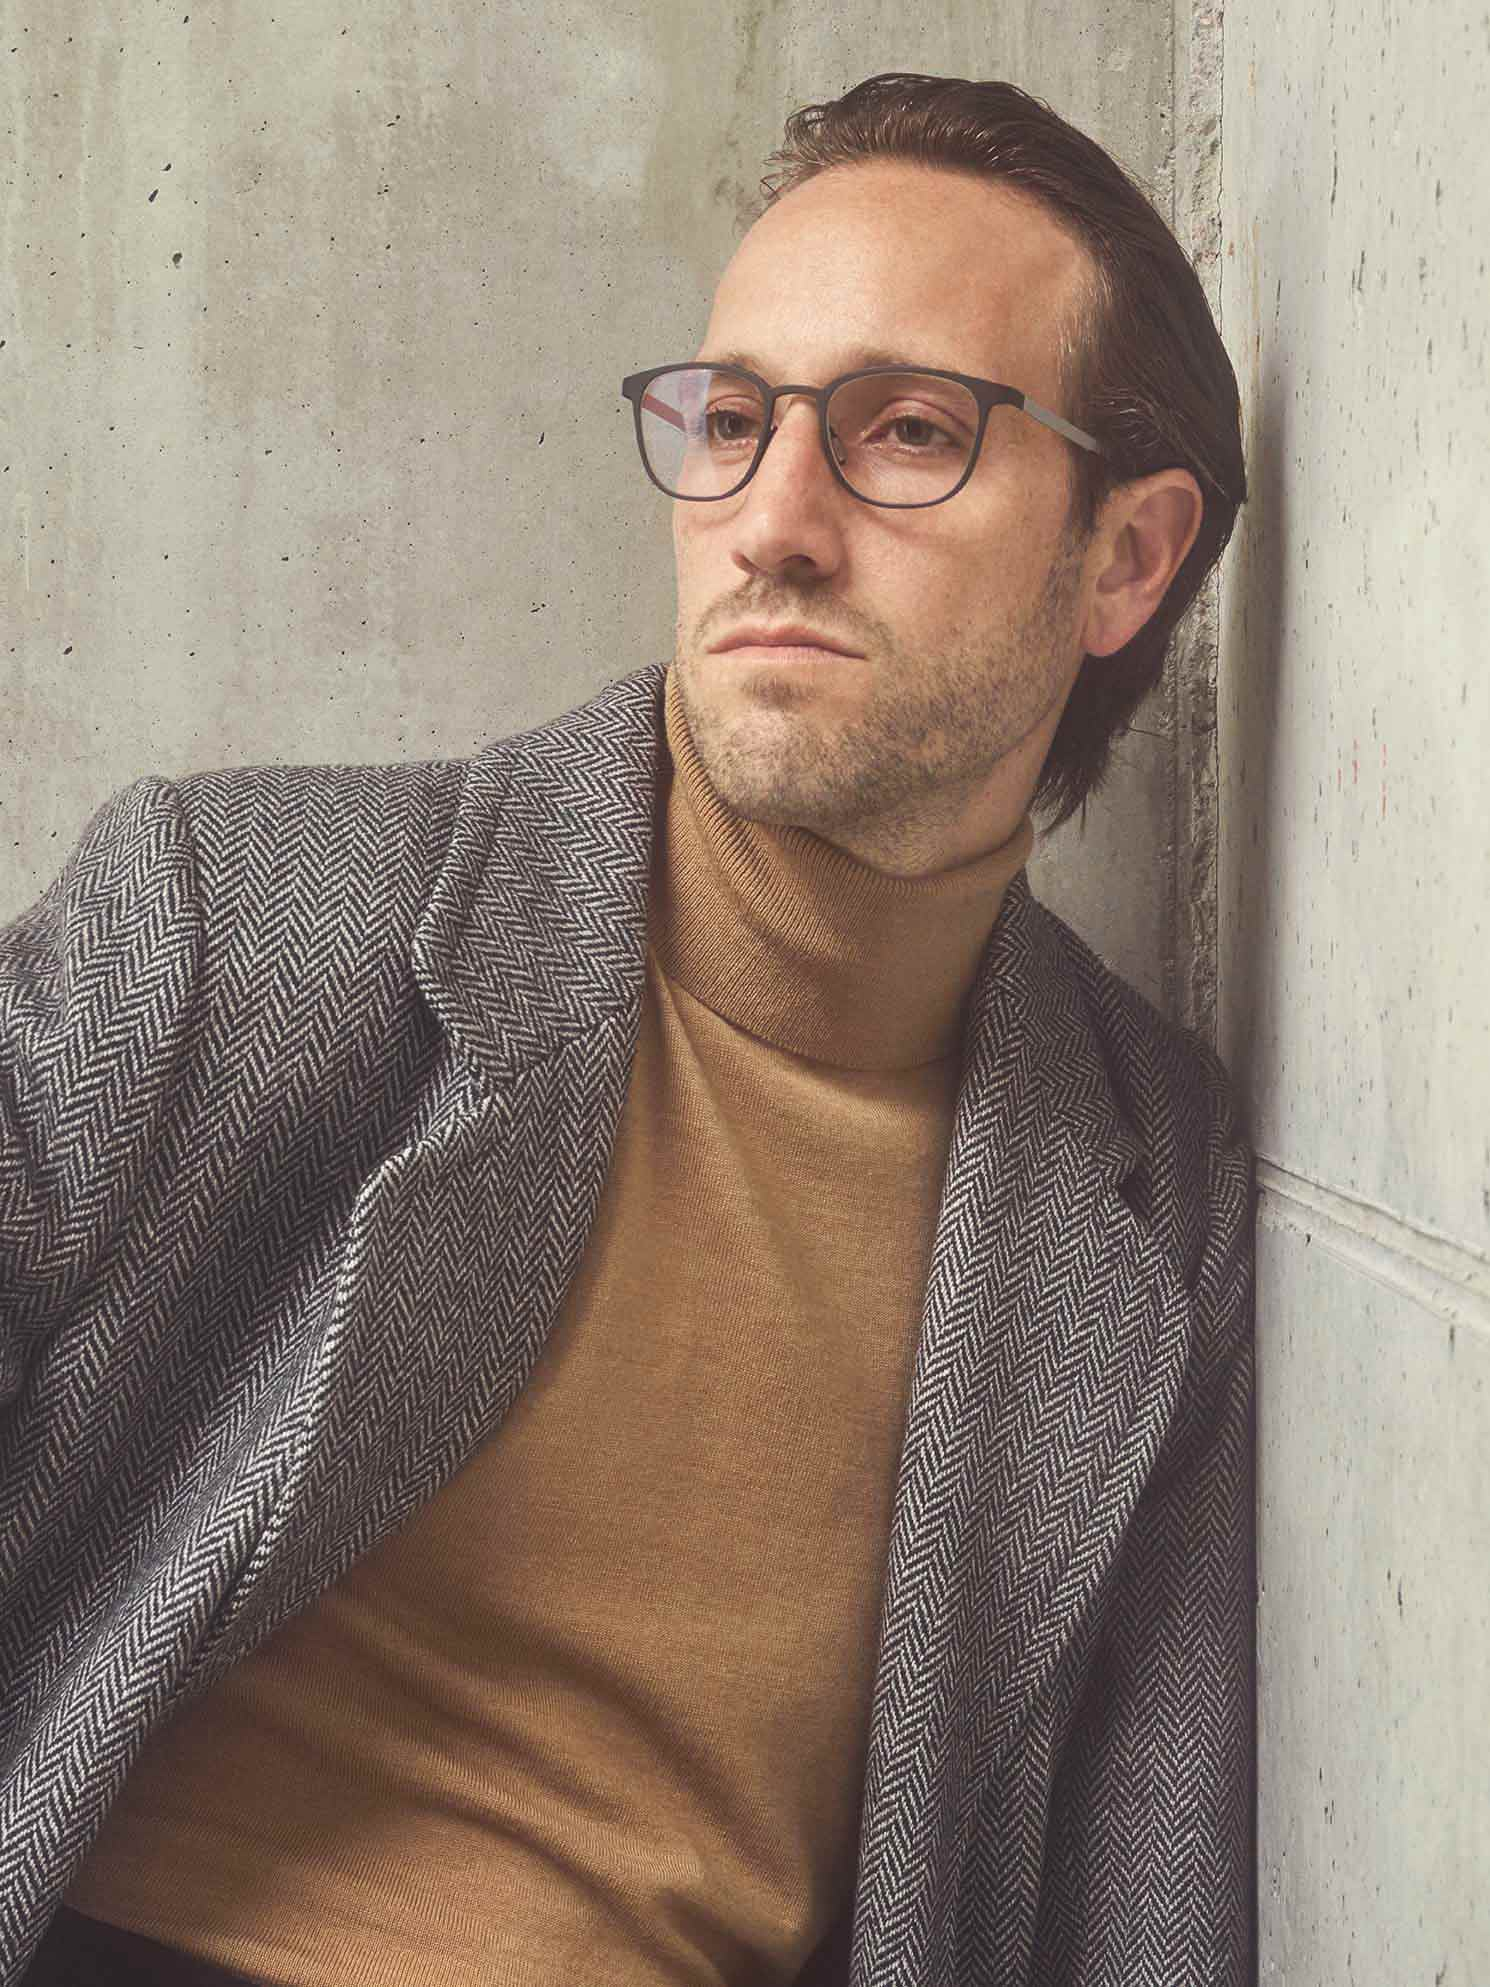 Man wearing Ørgreen Optics Radiant titanium eyeglasses in matte bordeaux/sandblasted titanium.